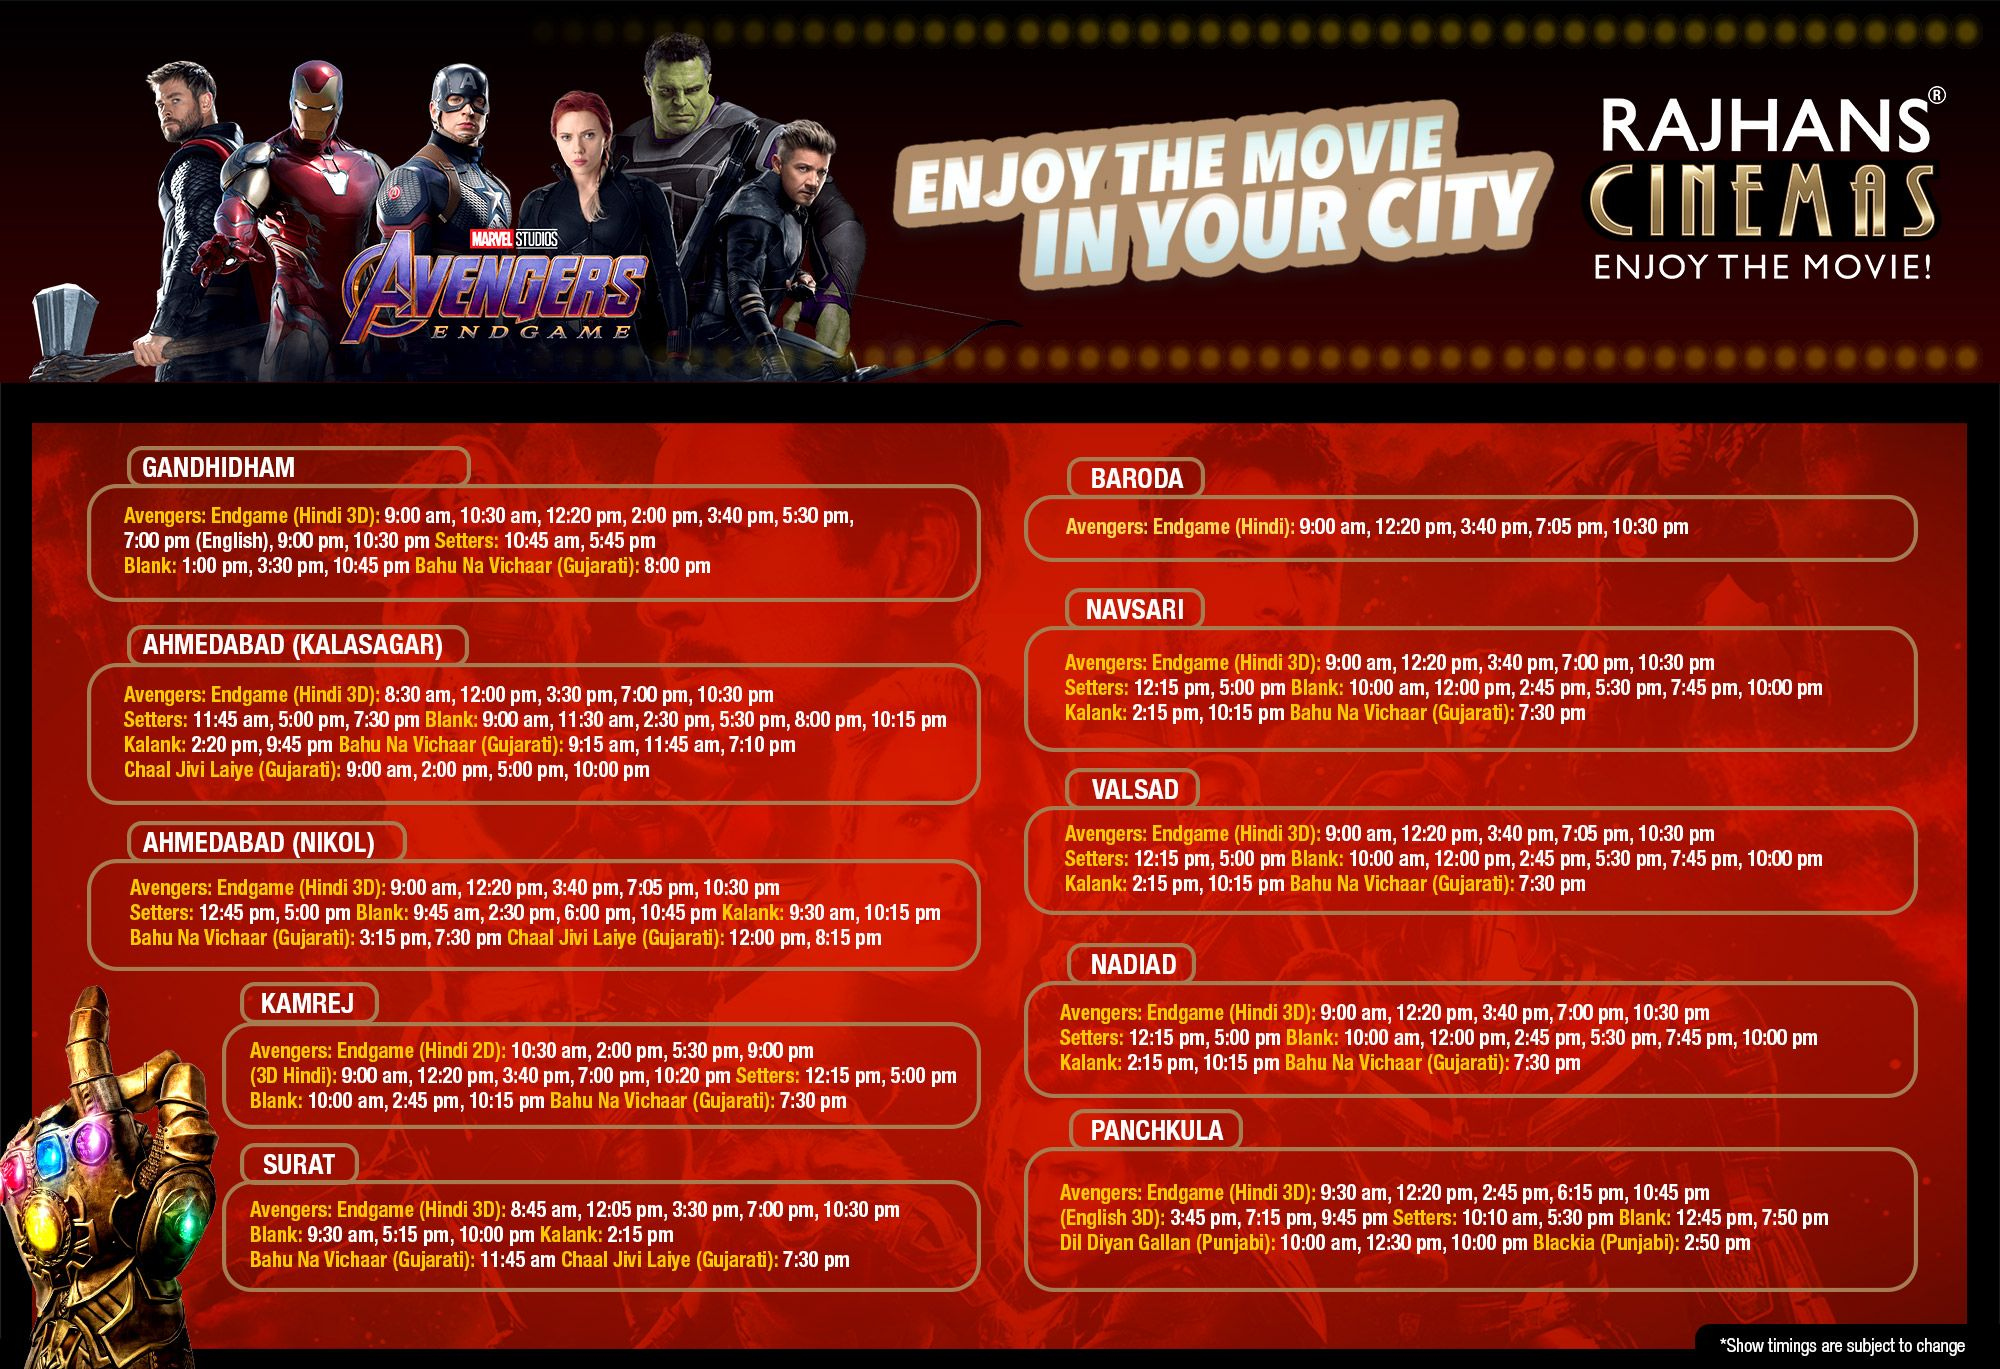 Book your tickets only at your nearest RajhansCinemas